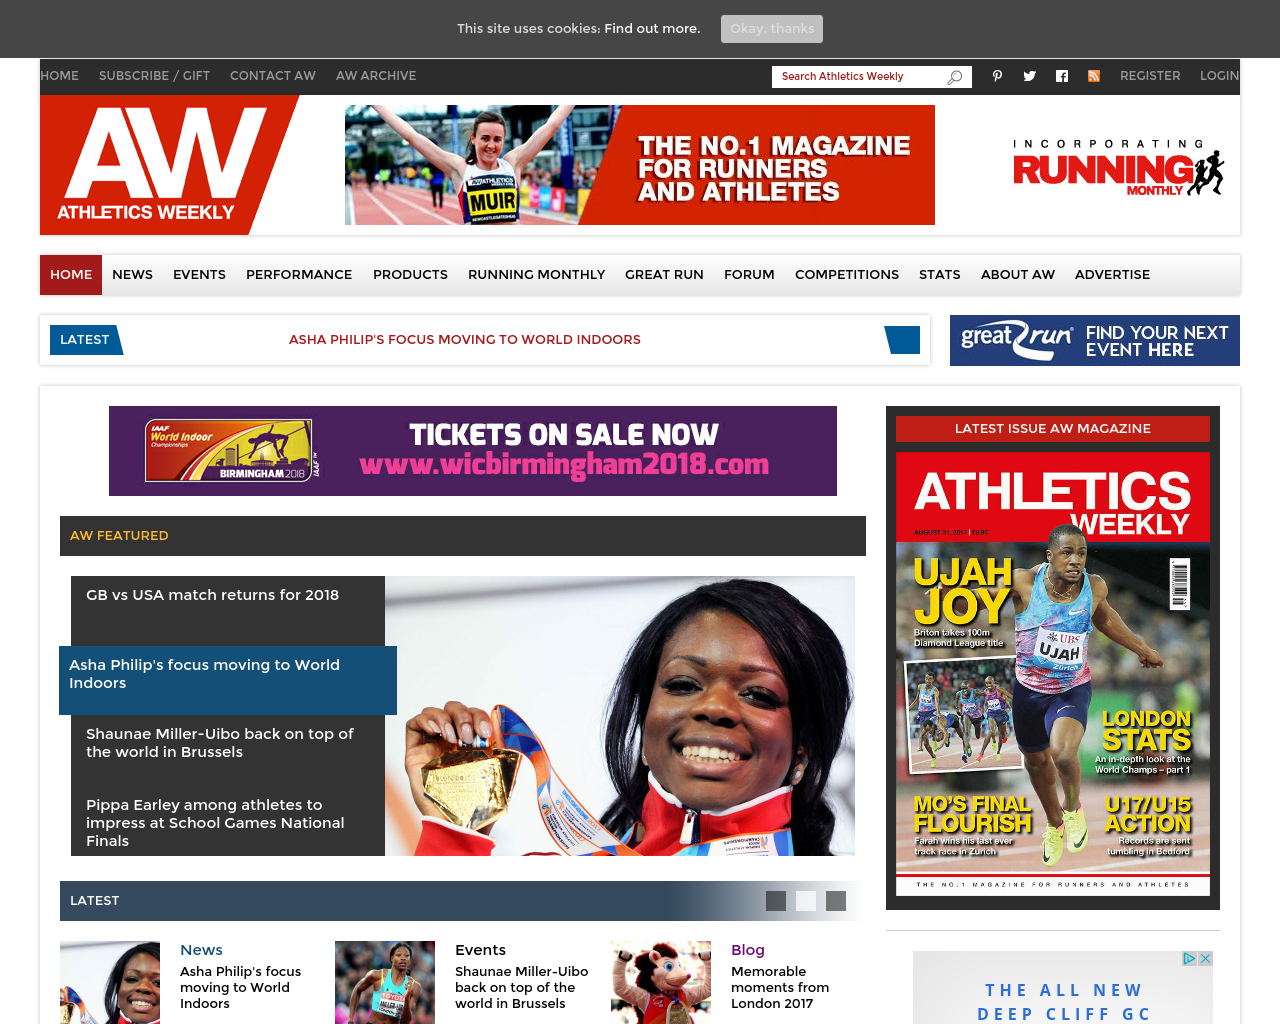 AW-Athletics-Weekly-Advertising-Reviews-Pricing